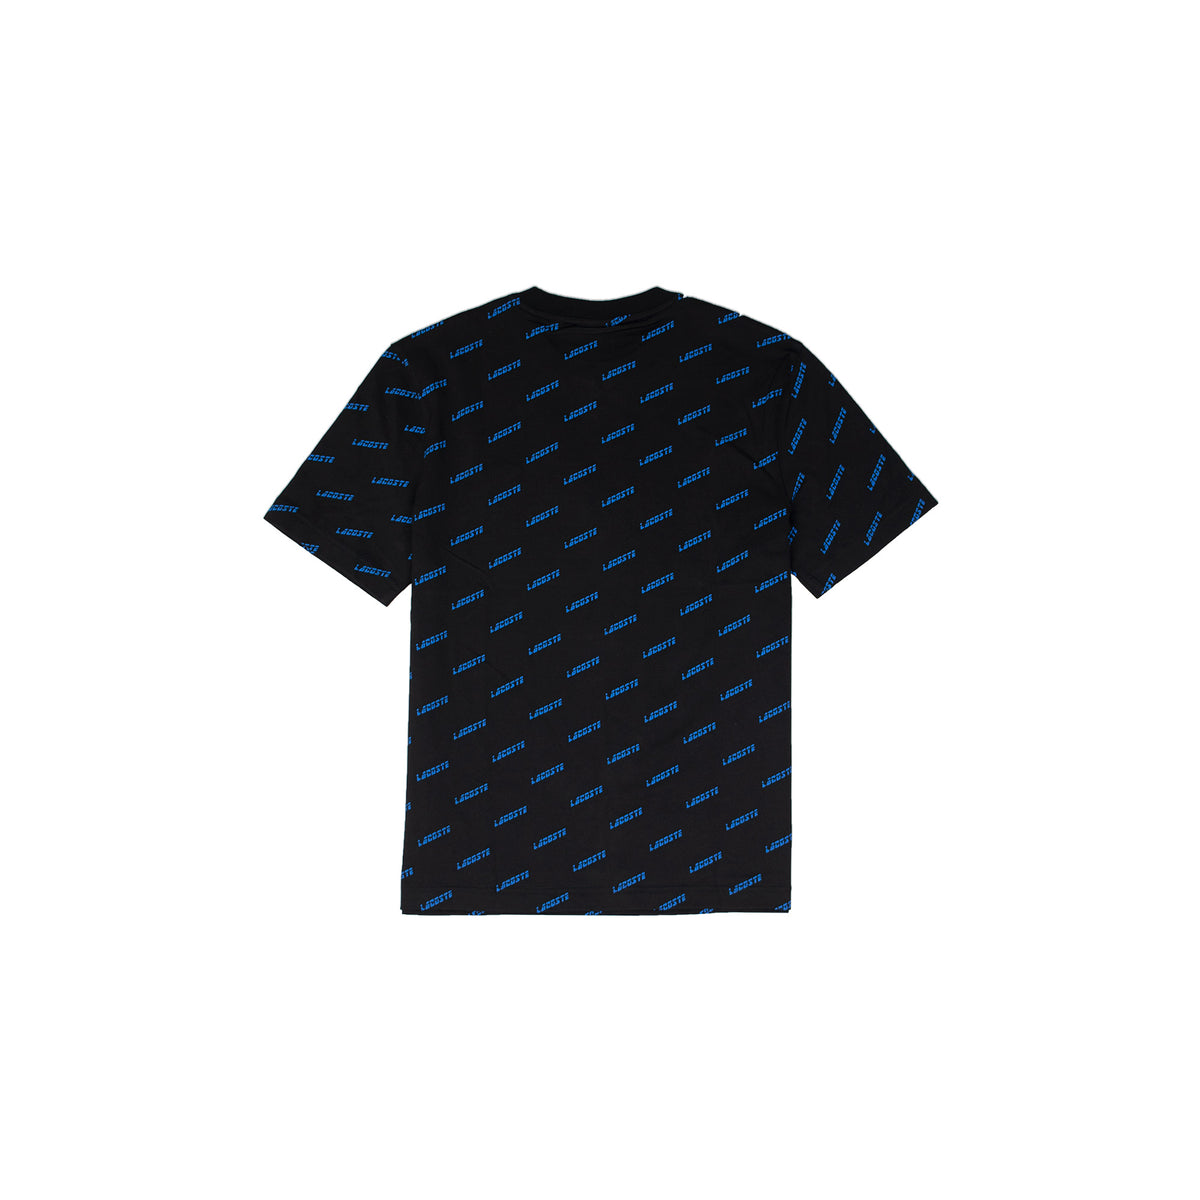 2a67ad8b Lacoste LIVE Men's All Over Print Tee